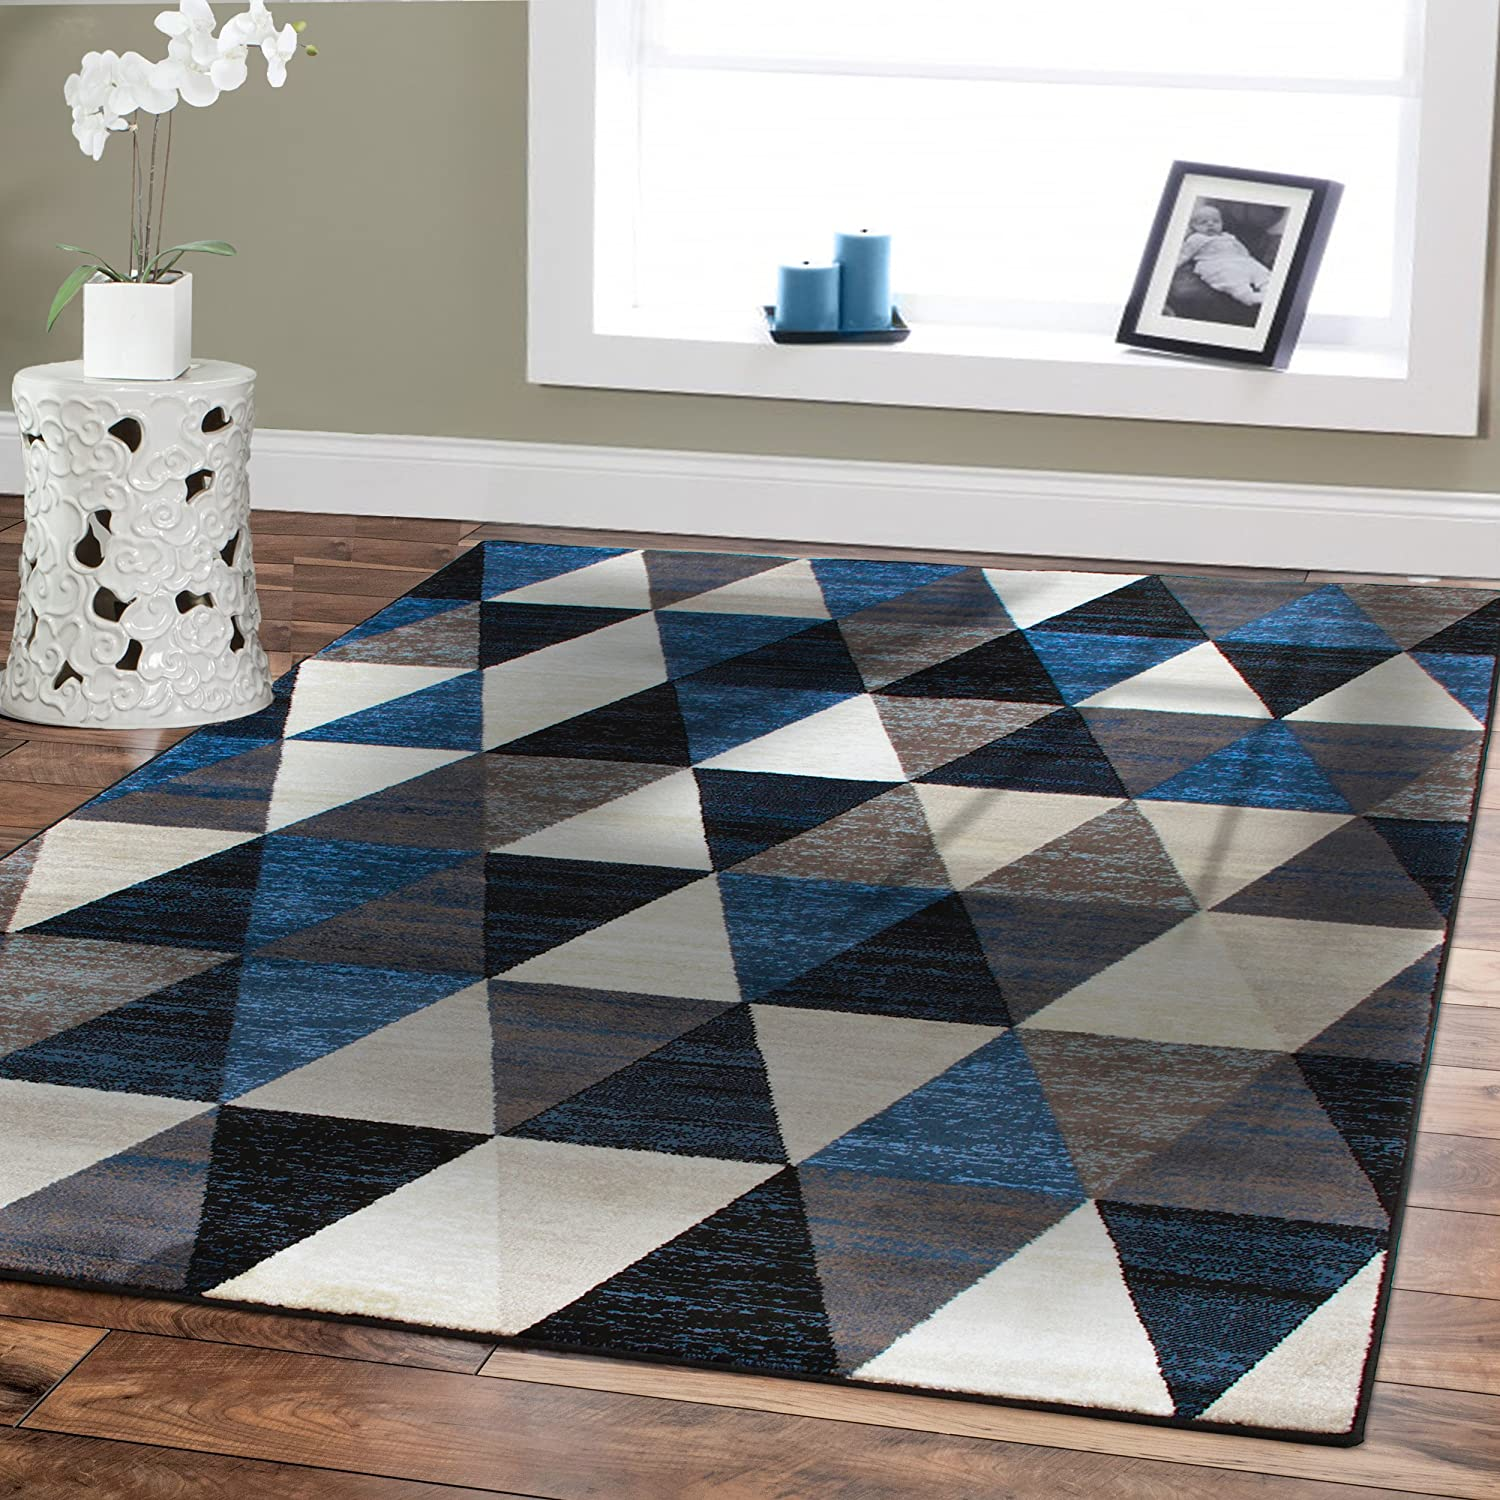 photos rug stunning design somats com idea cool living of decoration rugs ideas the cheap room